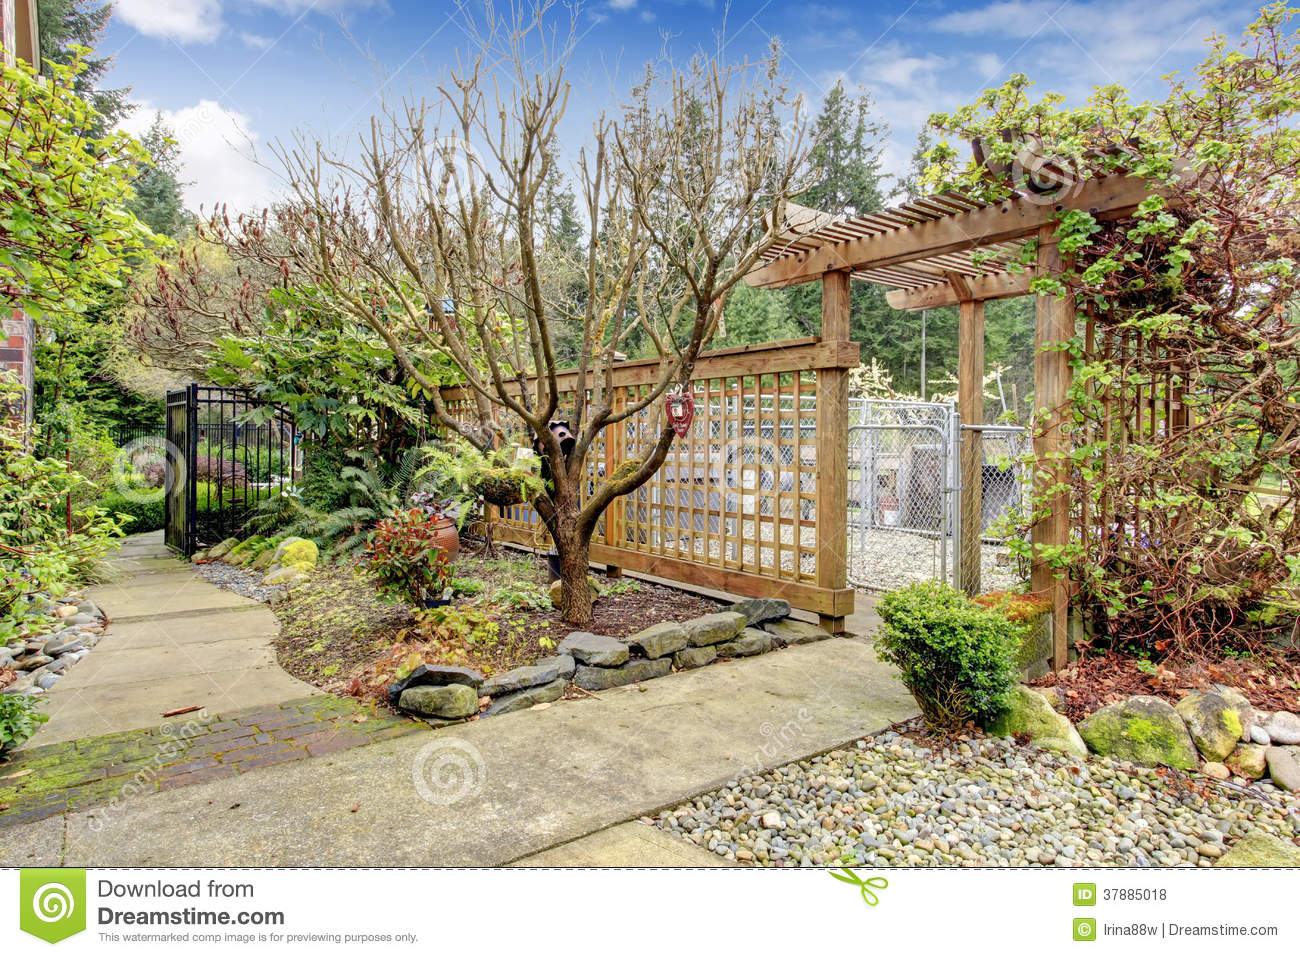 Fenced walkway with trees and flower bed